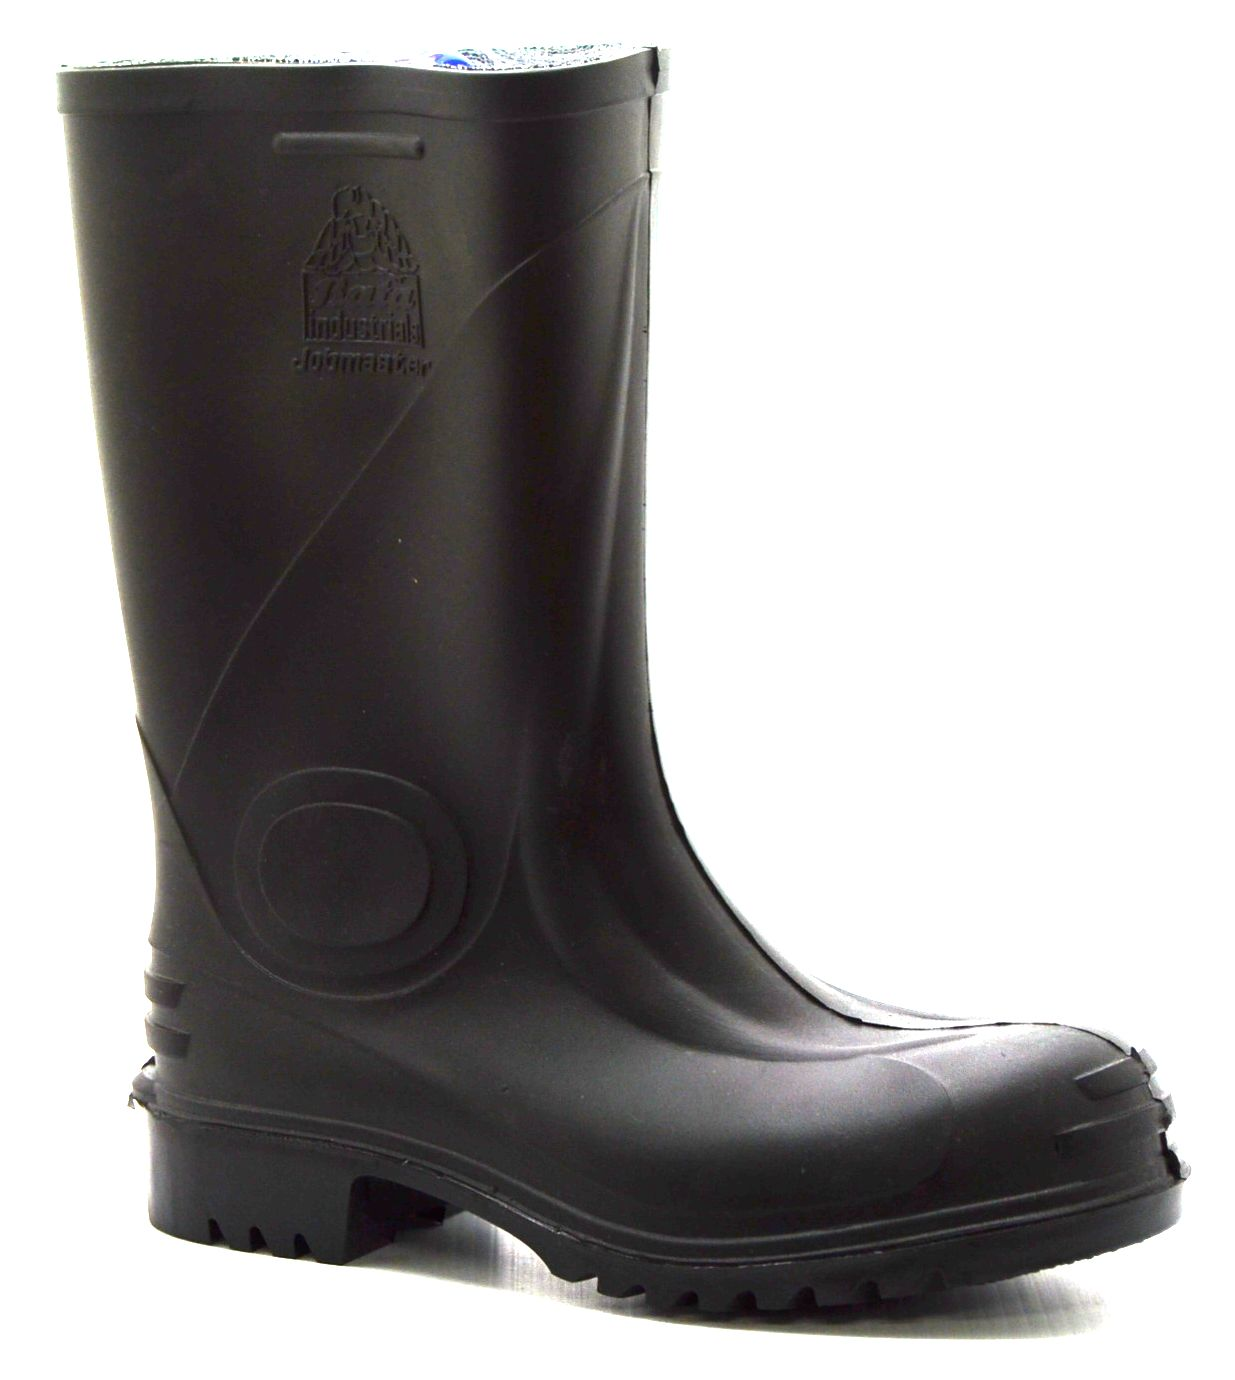 BLACK 300MM HANDYMAN GUM BOOT